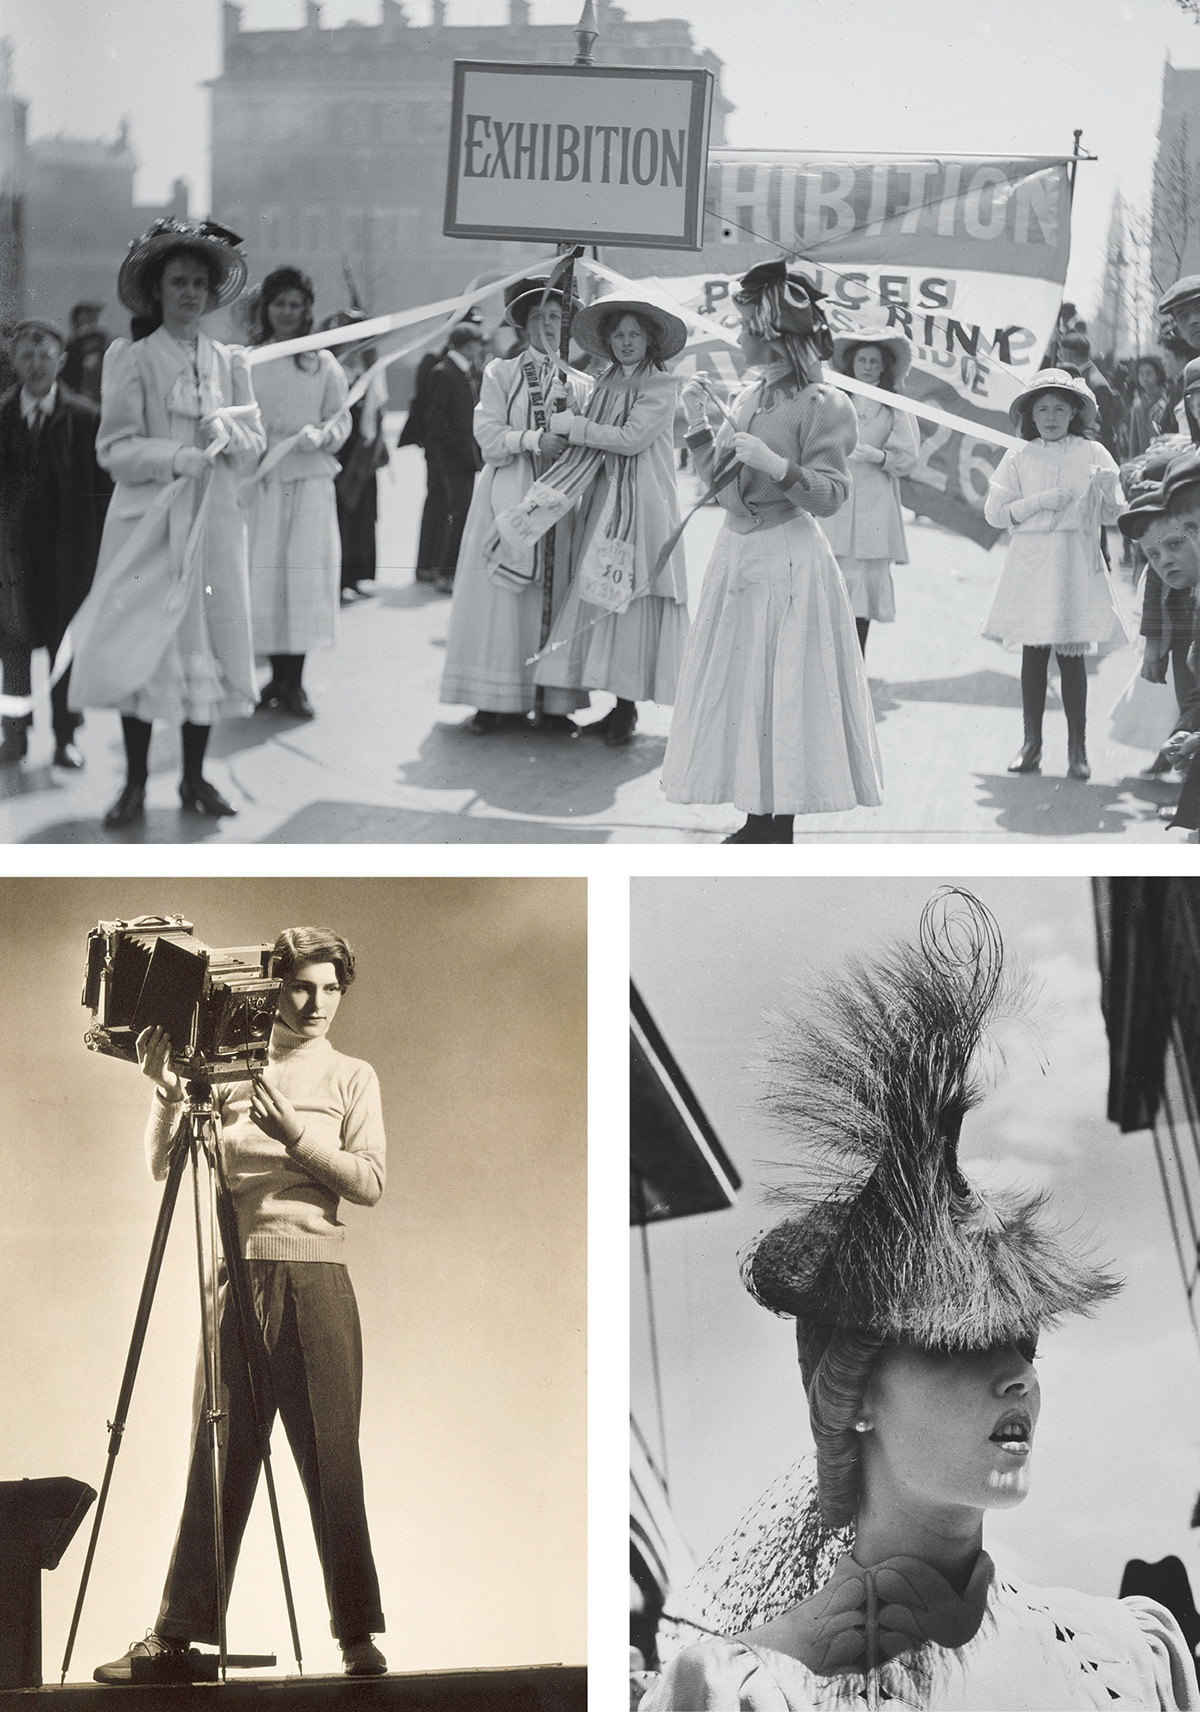 Photographs courtesy of the Musée d'Orsay (Jeunes suffragettes faisant la promotion de l'exposition de la Women's Exhibition de Knightsbridge, Londres, Mai 1909, by Christina Broom, courtesy of Museum of London; Self-portrait with camera, by Margaret Bourke-White, courtesy of Los Angeles County Museum of Art, Digital Image Museum Associates/Art Resource NY/Scala, Florence; Beim Rennen in Longchamp, 1936, by Regina Relang, courtesy of Münchner Stadtmuseum, Sammlung Fotografie, Archiv Relang)